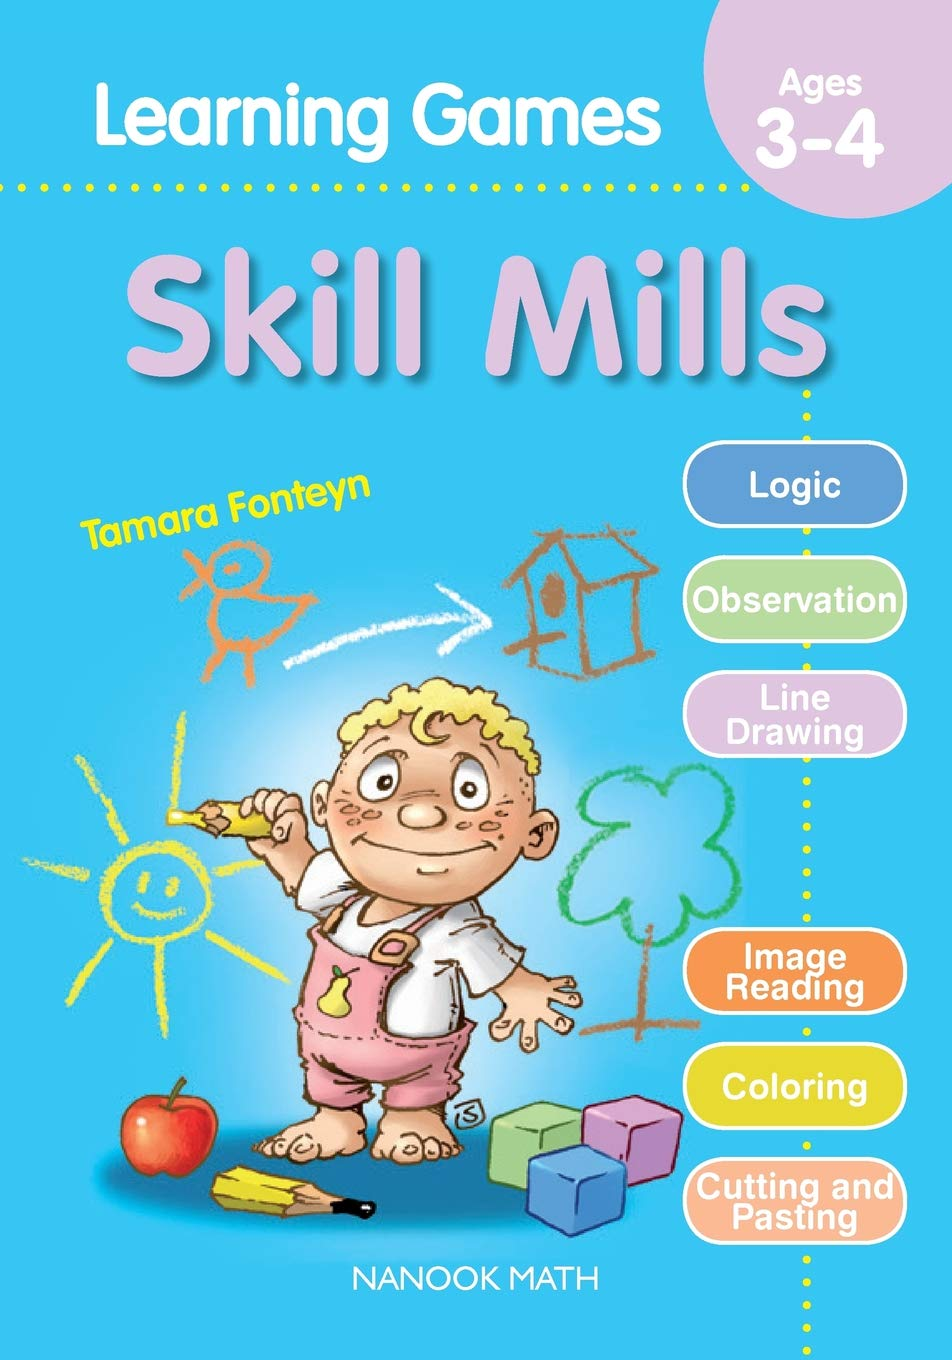 Skill Mills Learning Games For 3 To 4 Year Olds Early Learning Activity Book Fonteyn Tamara Nanook Math Beetle Jack 9781623213183 Amazon Com Books